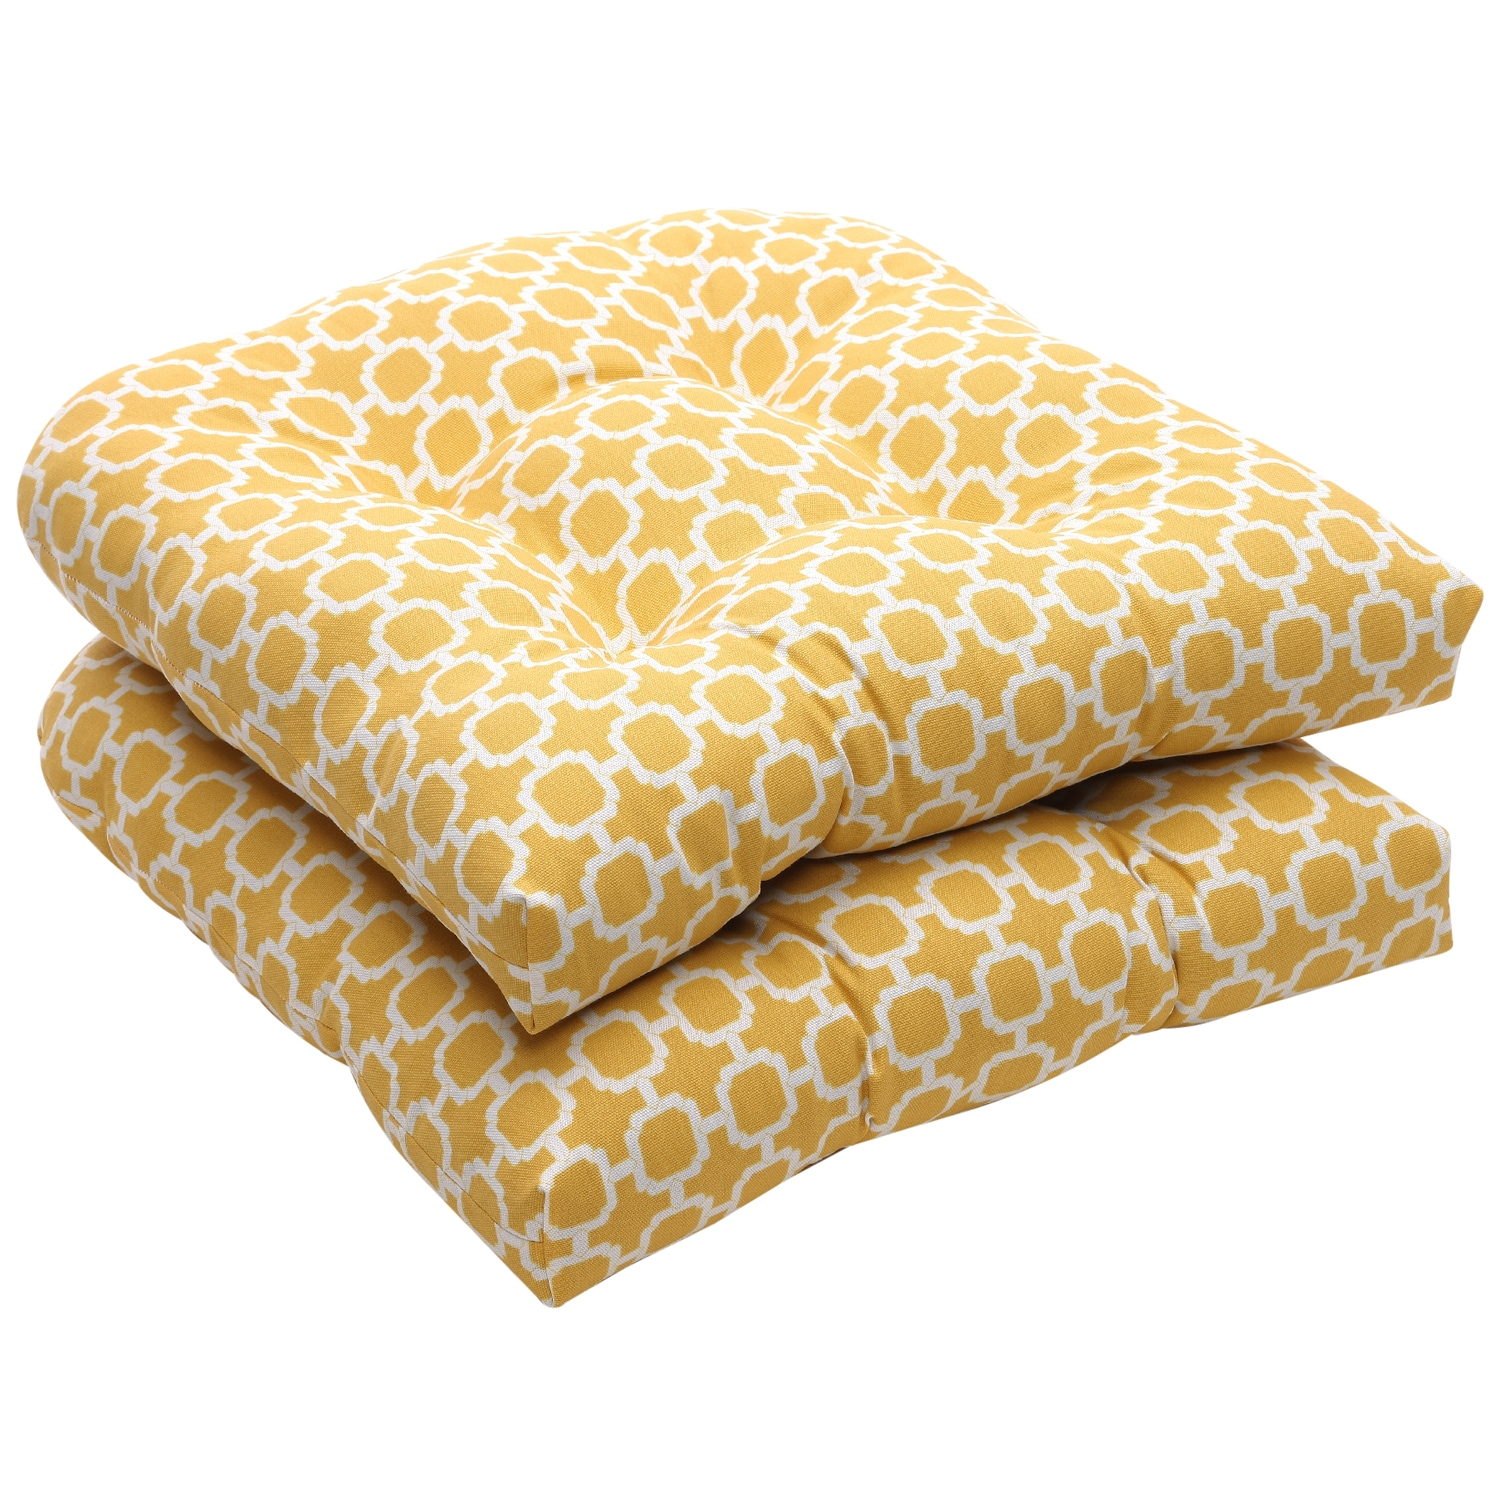 Outdoor Yellow and White Geometric Wicker Seat Cushions